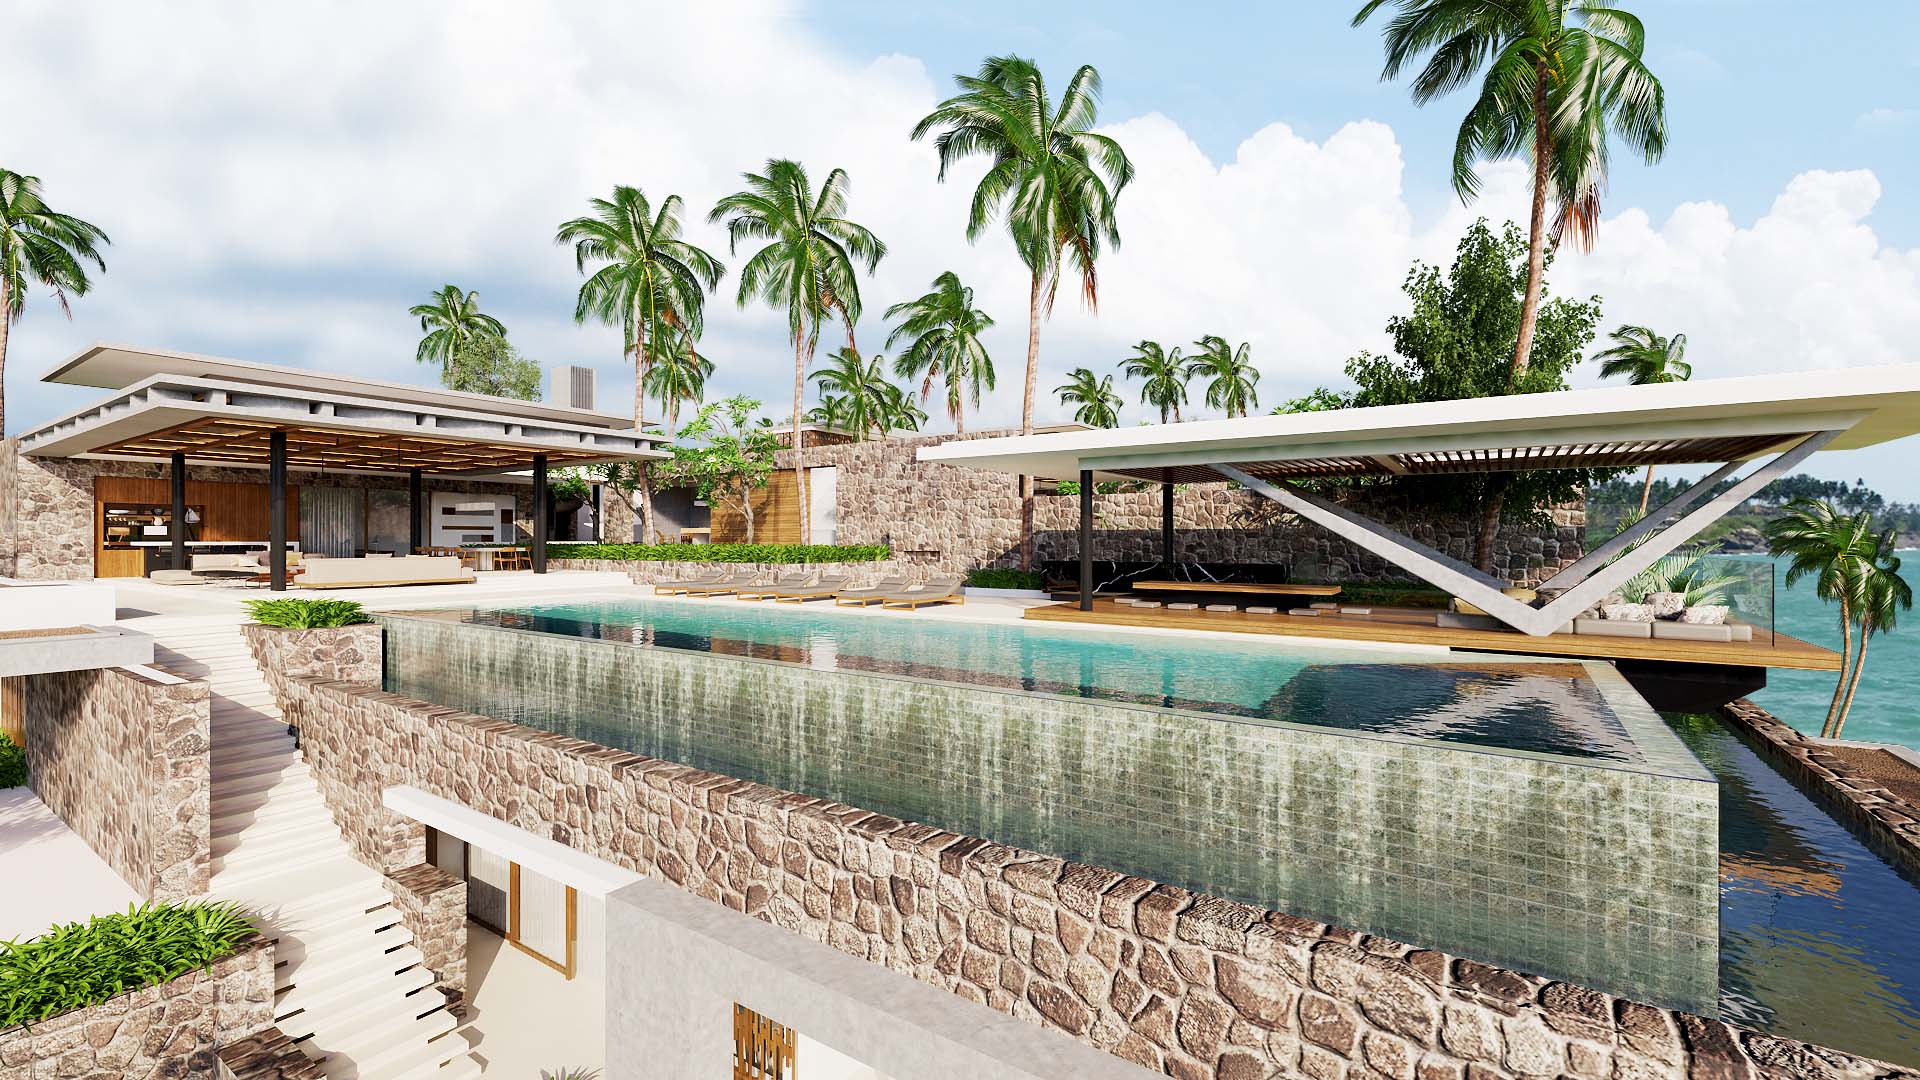 Projects Photo/2 Villas in Sri Lanka, Thangalla/thangalla-villa-1-pool